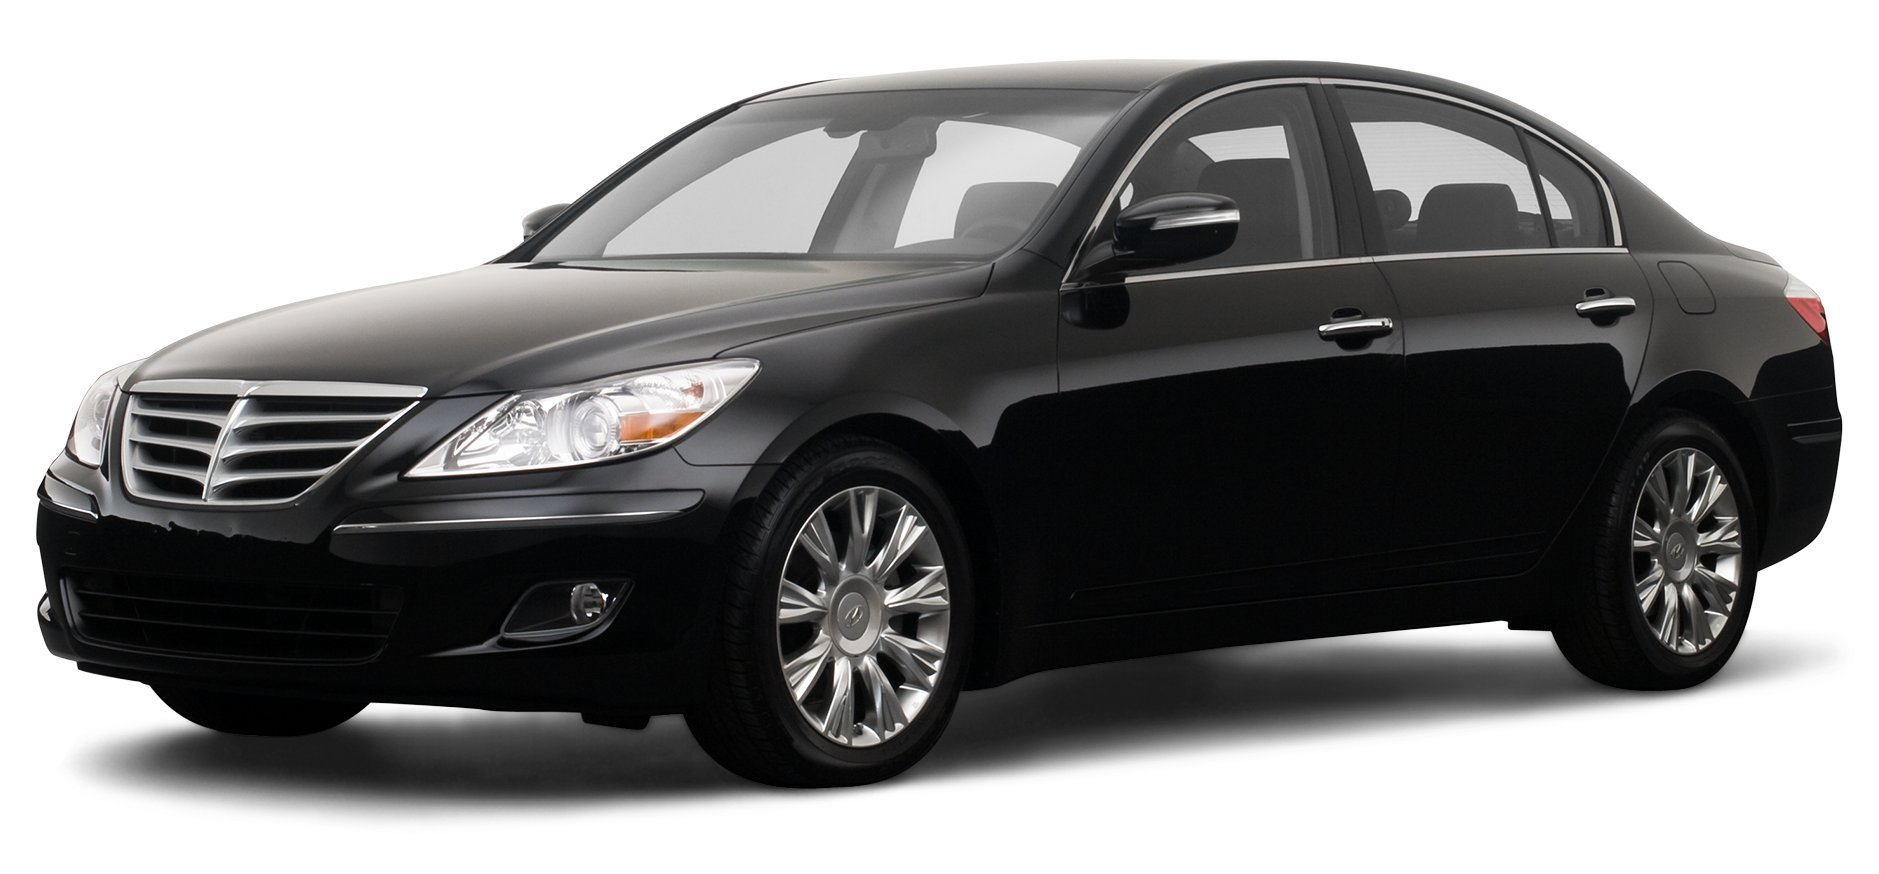 2009 Hyundai Genesis, 4-Door Sedan 3.8L V6 ...